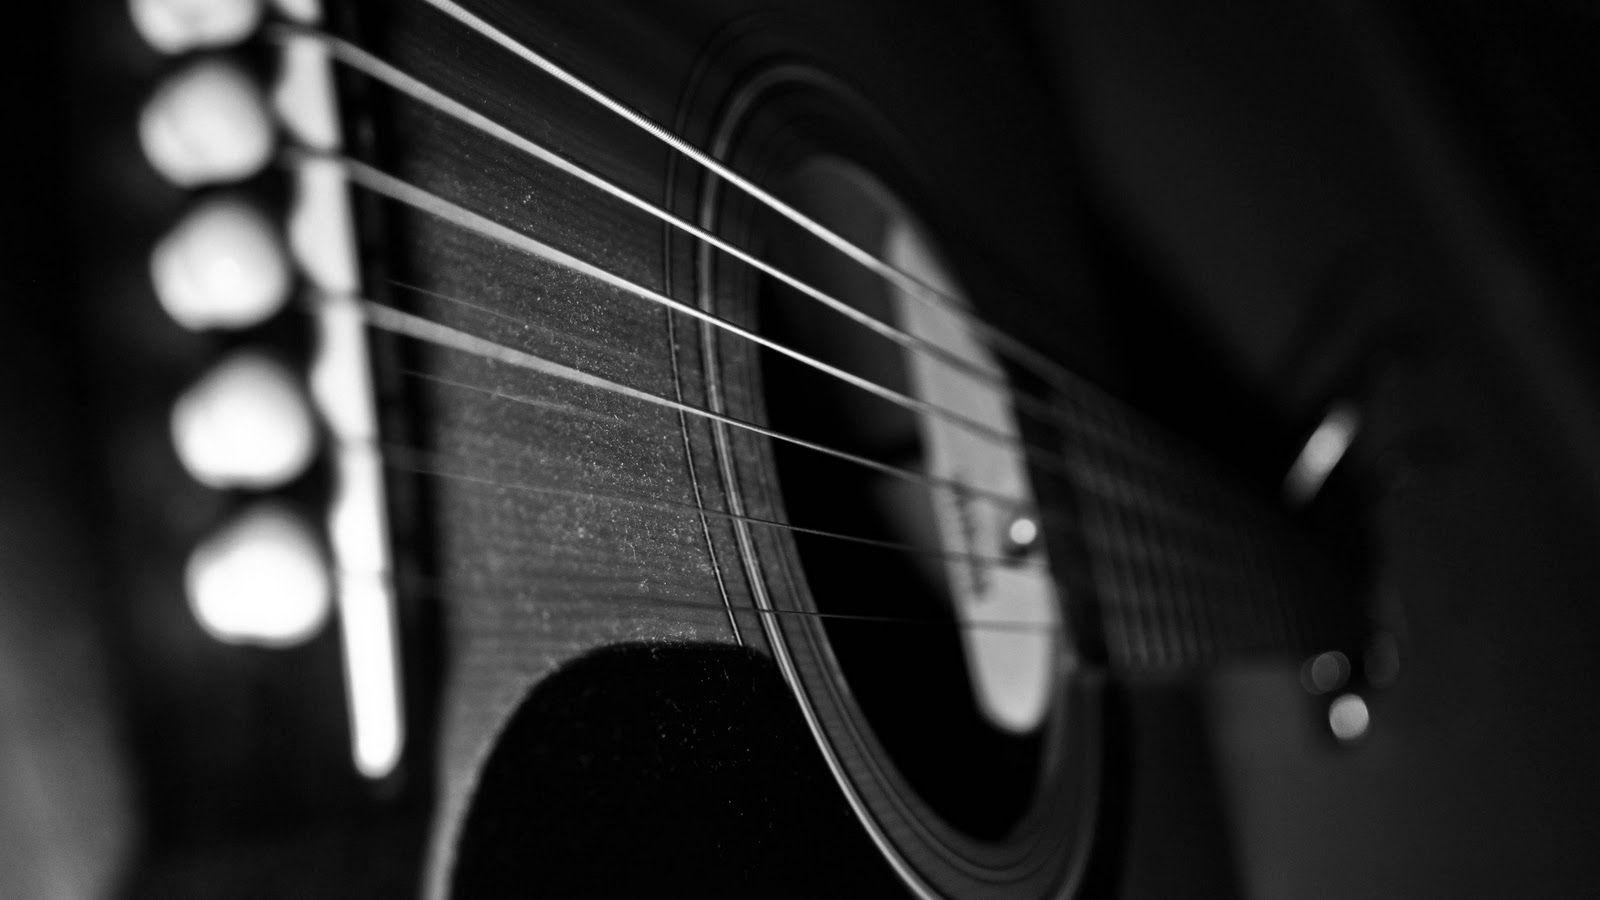 Wallpapers For > Black Acoustic Guitar Wallpaper Hd